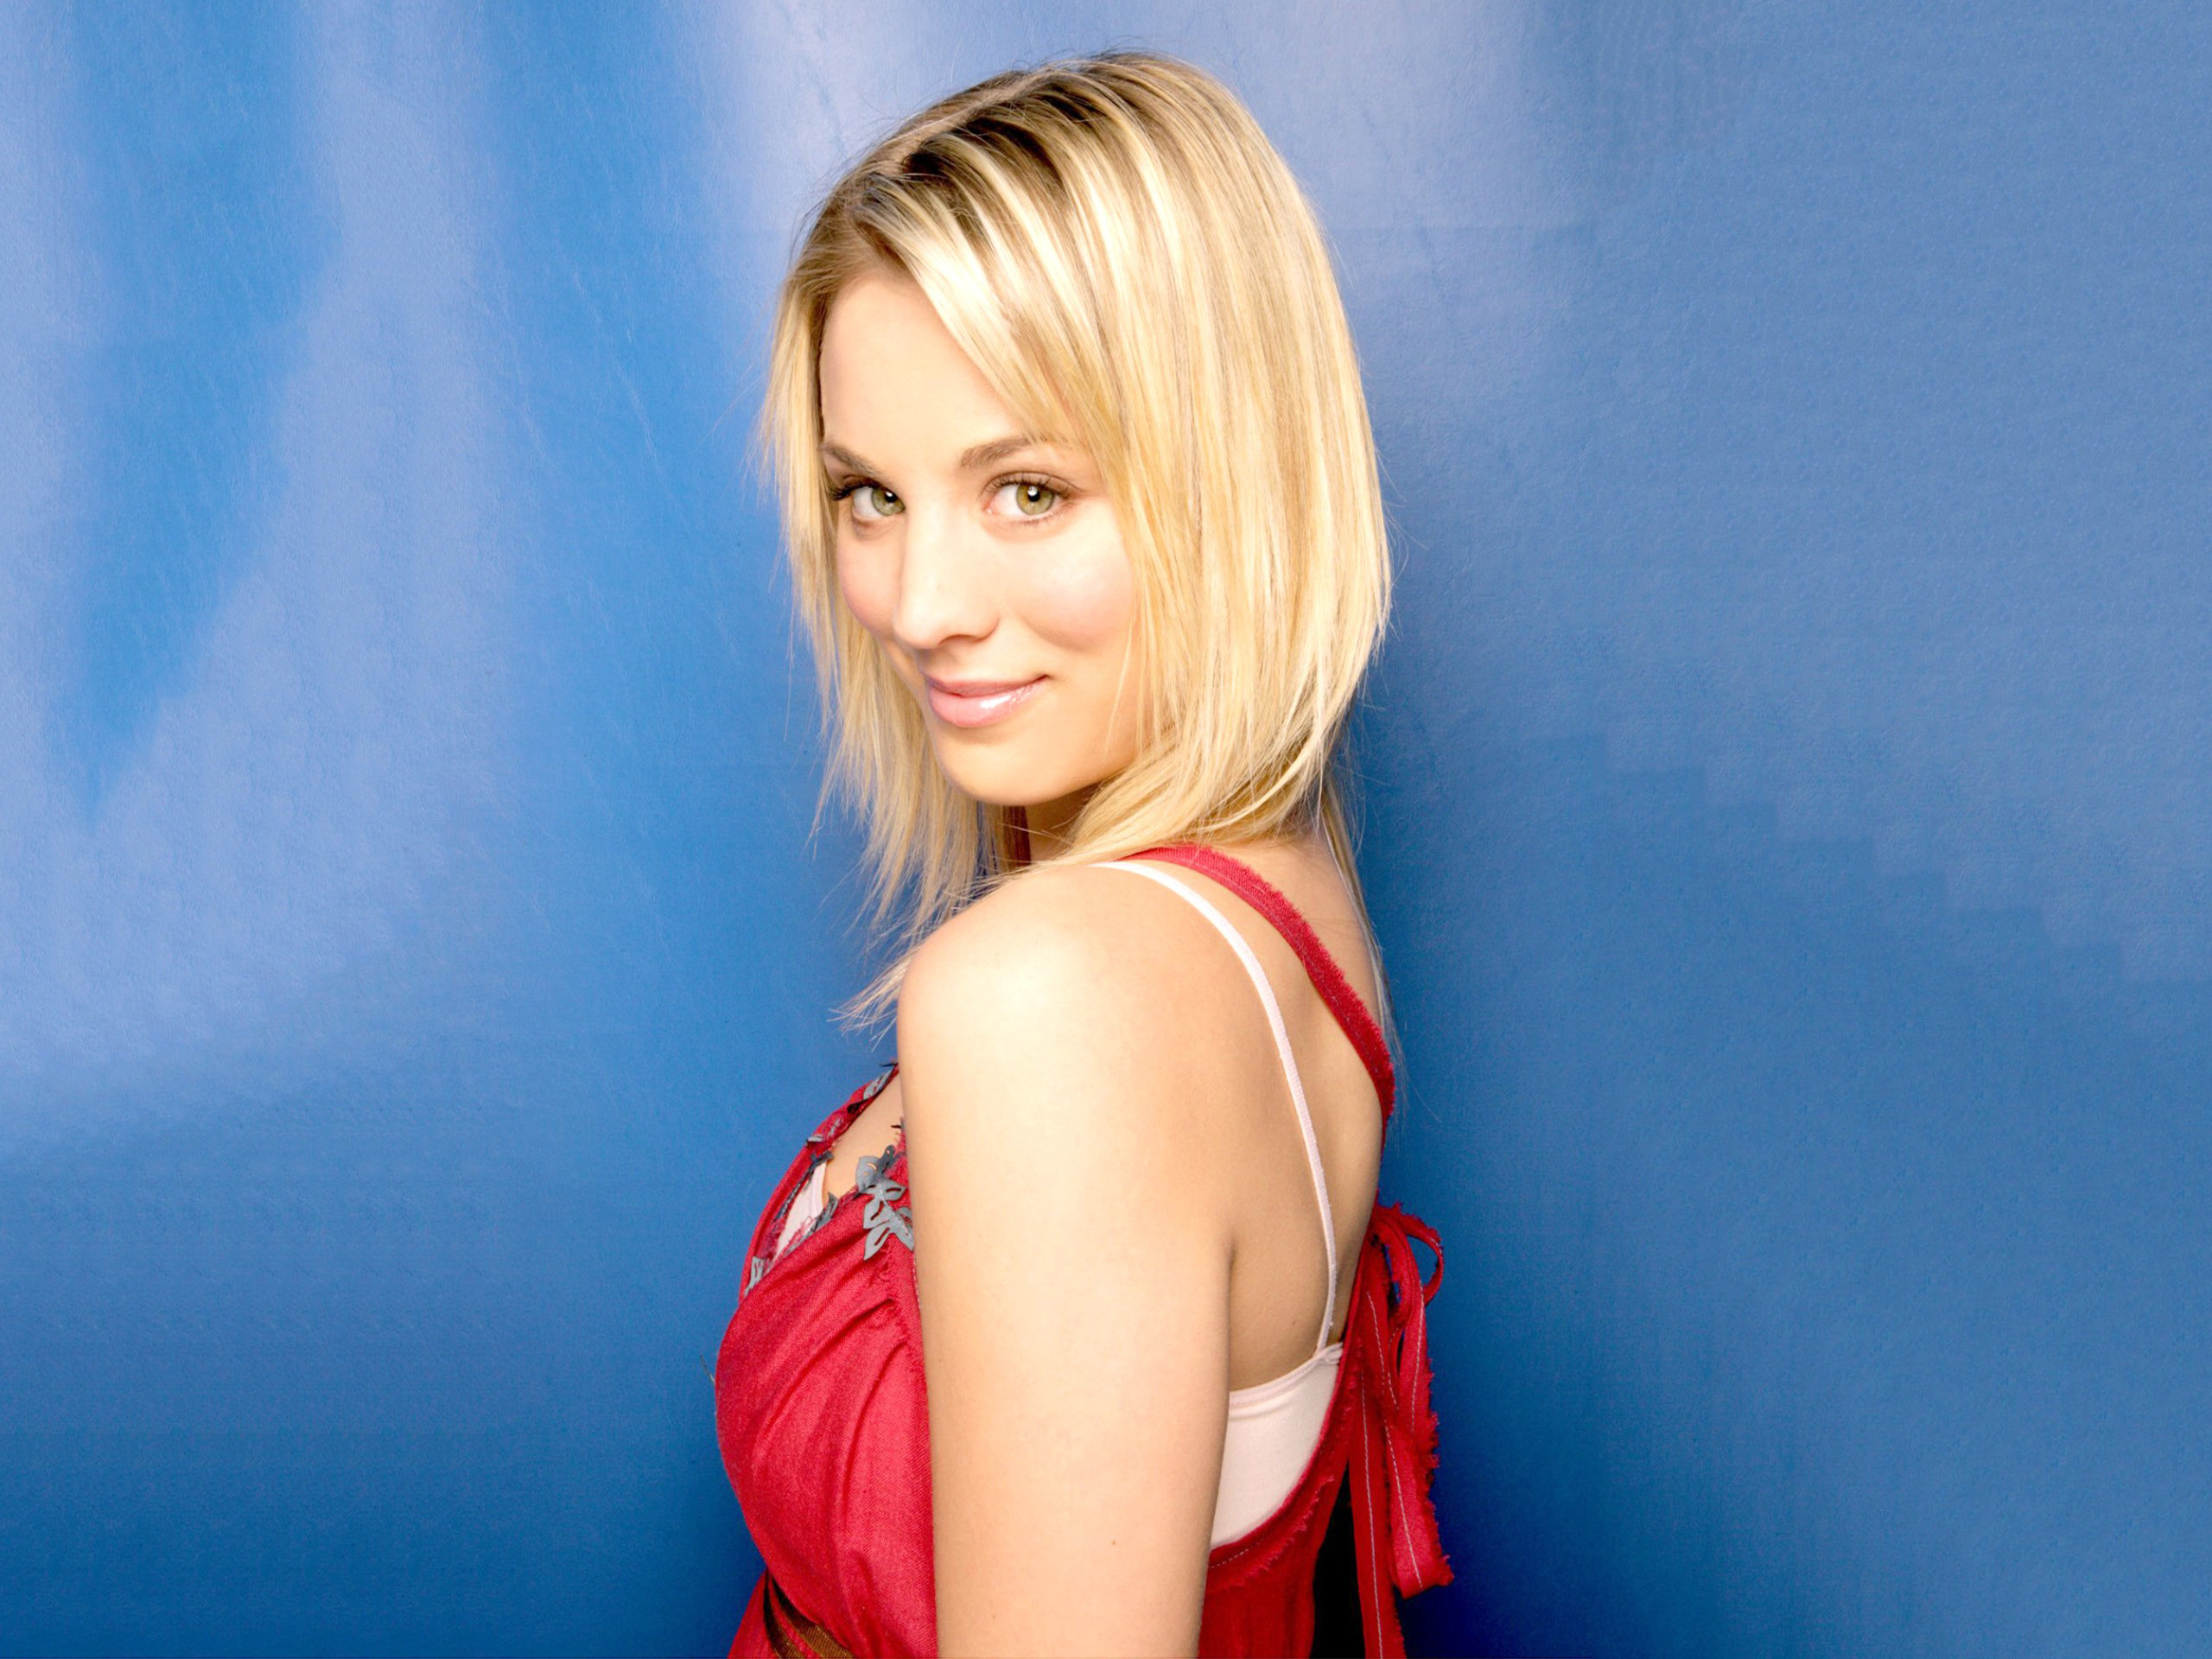 Kaley Cuoco wallpapers, Celebrity, HQ Kaley Cuoco pictures ...